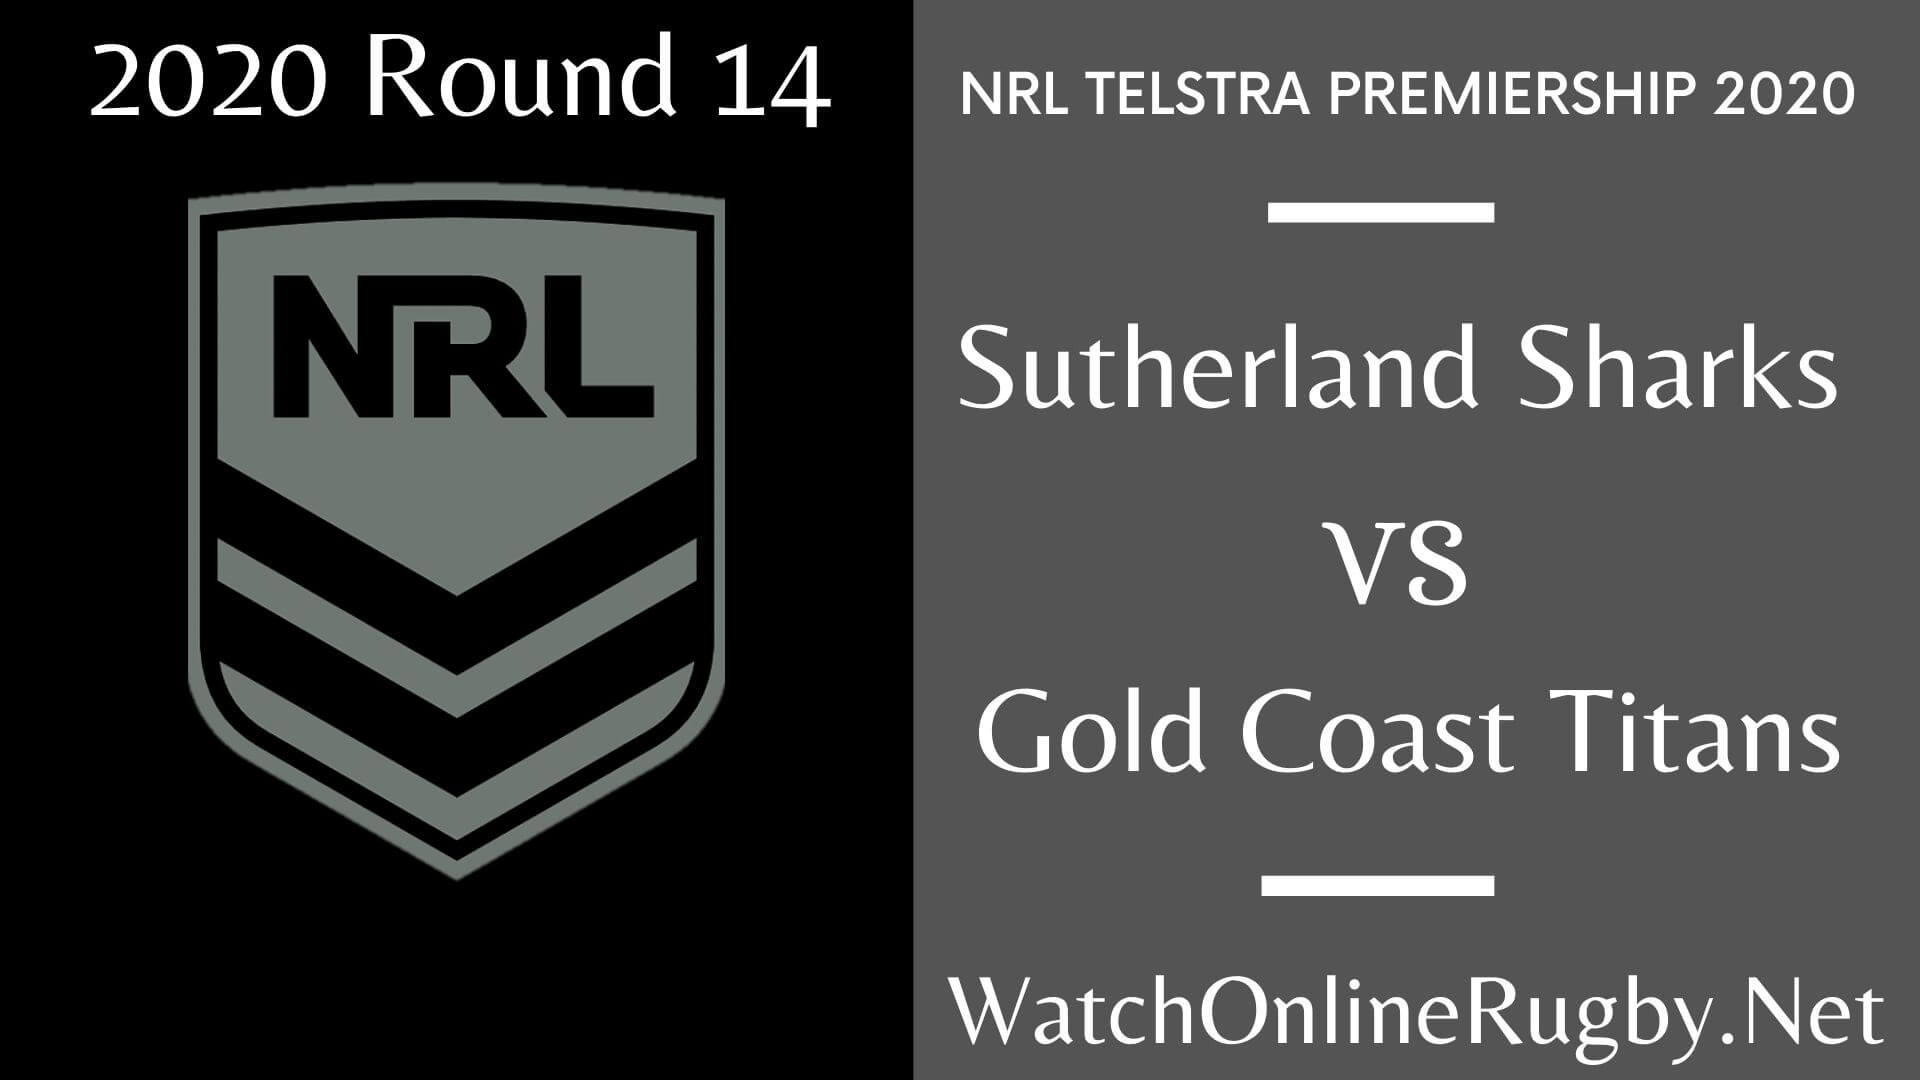 Sutherland Sharks Vs Coast Titans Highlights 2020 Round 14 NRL Rugby